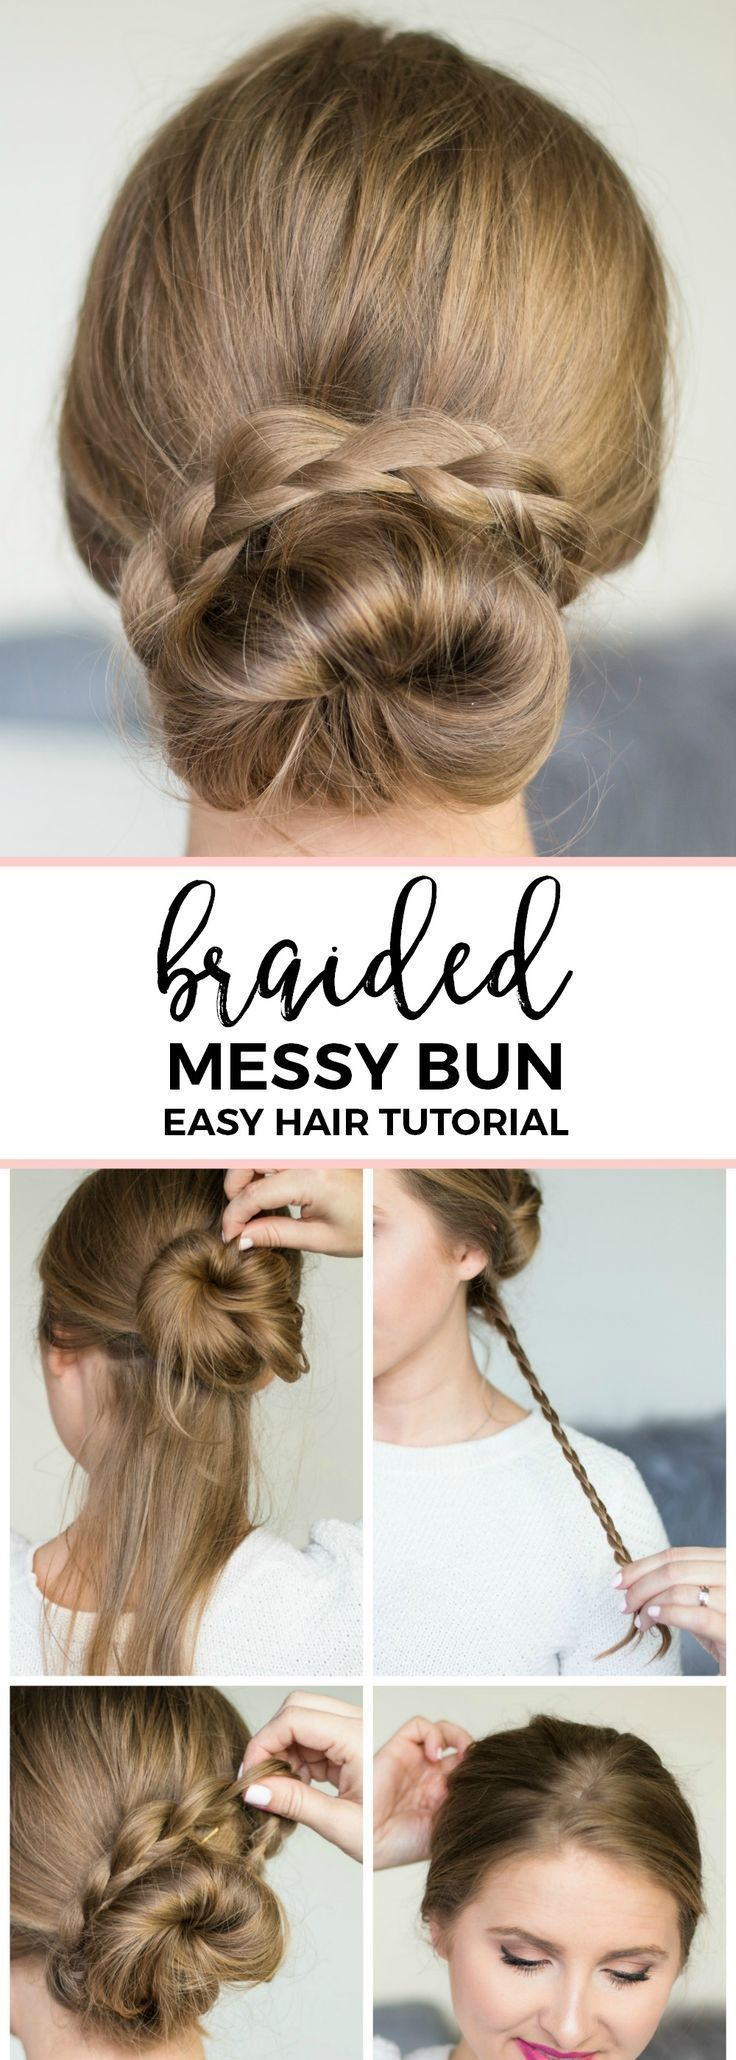 Braided messy bun hair tutorial quick and easy noheat hairstyle